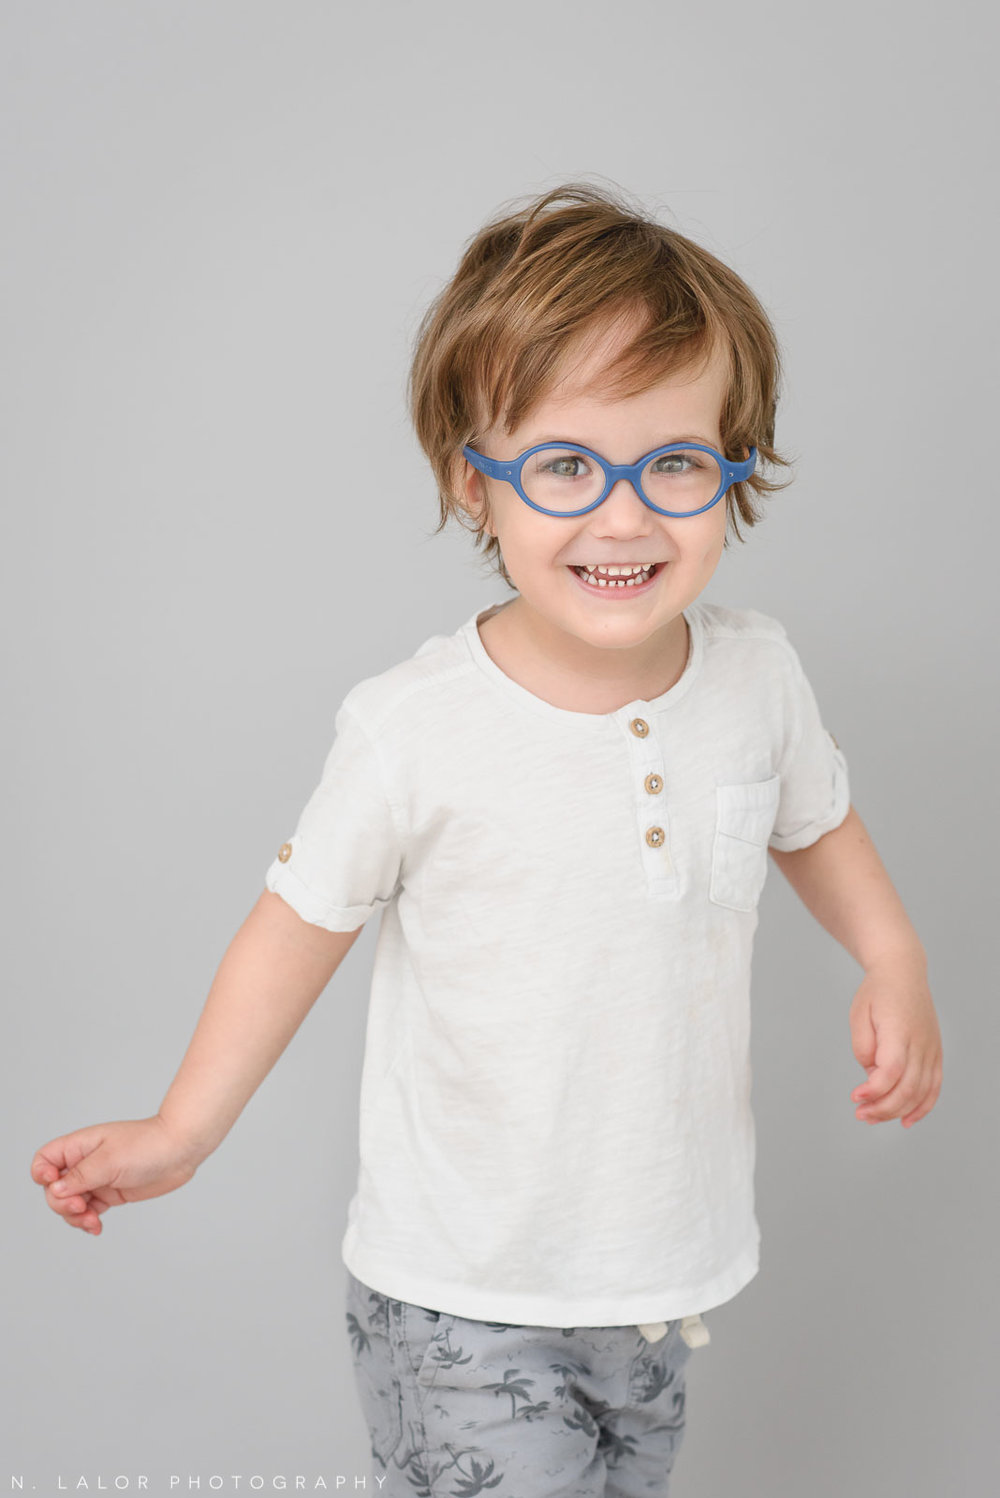 3-year old with glasses. Simple studio portrait session with N. Lalor Photography in Greenwich, CT.